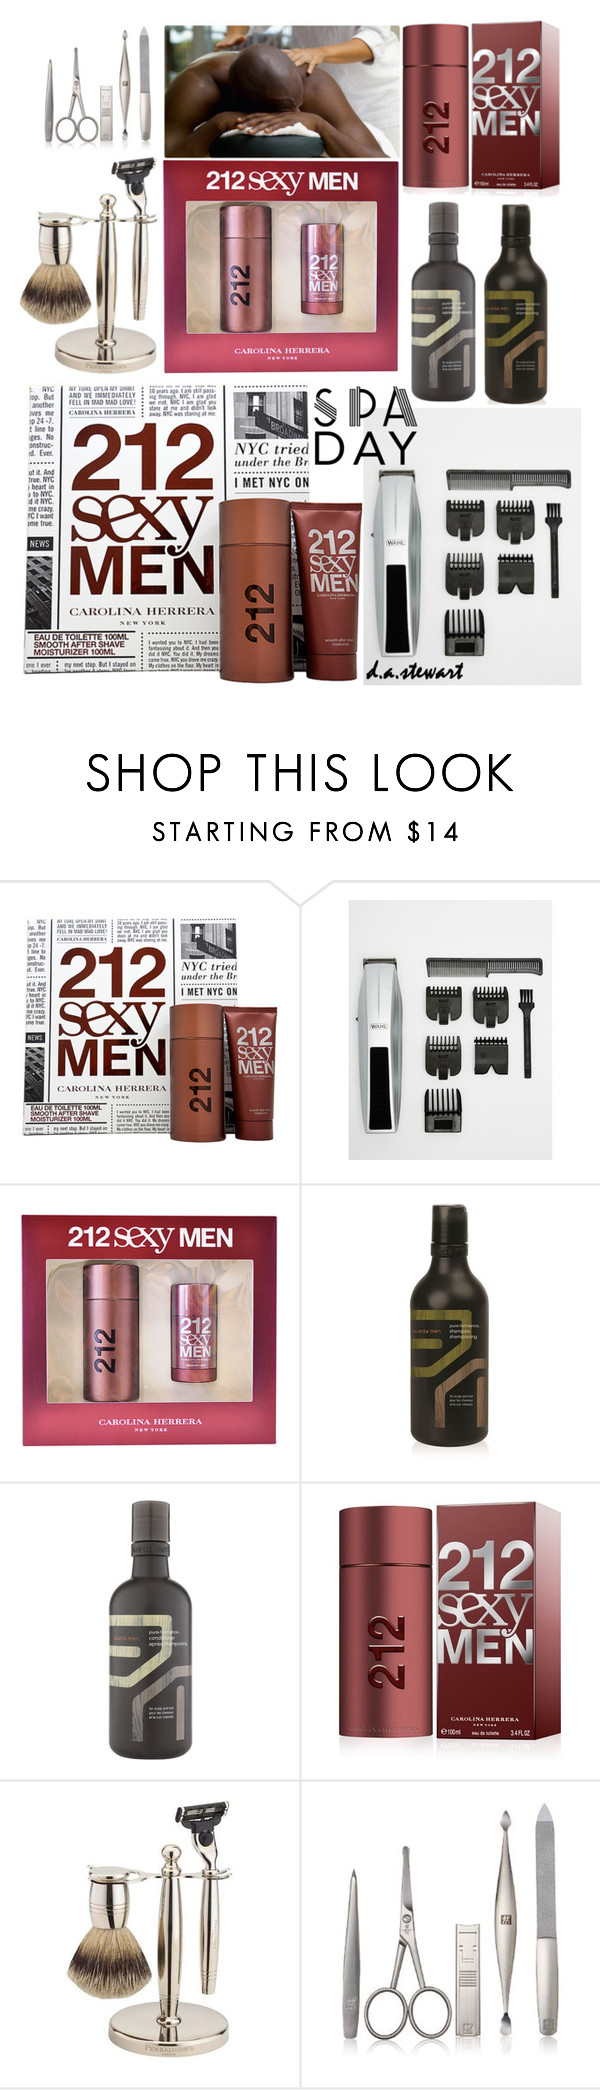 """""""REST & RELAXATION"""" by dastewart ❤ liked on Polyvore featuring beauty, Carolina Herrera, Wahl, Aveda, PENHALIGON'S, Zwilling Pour Homme and spaday"""